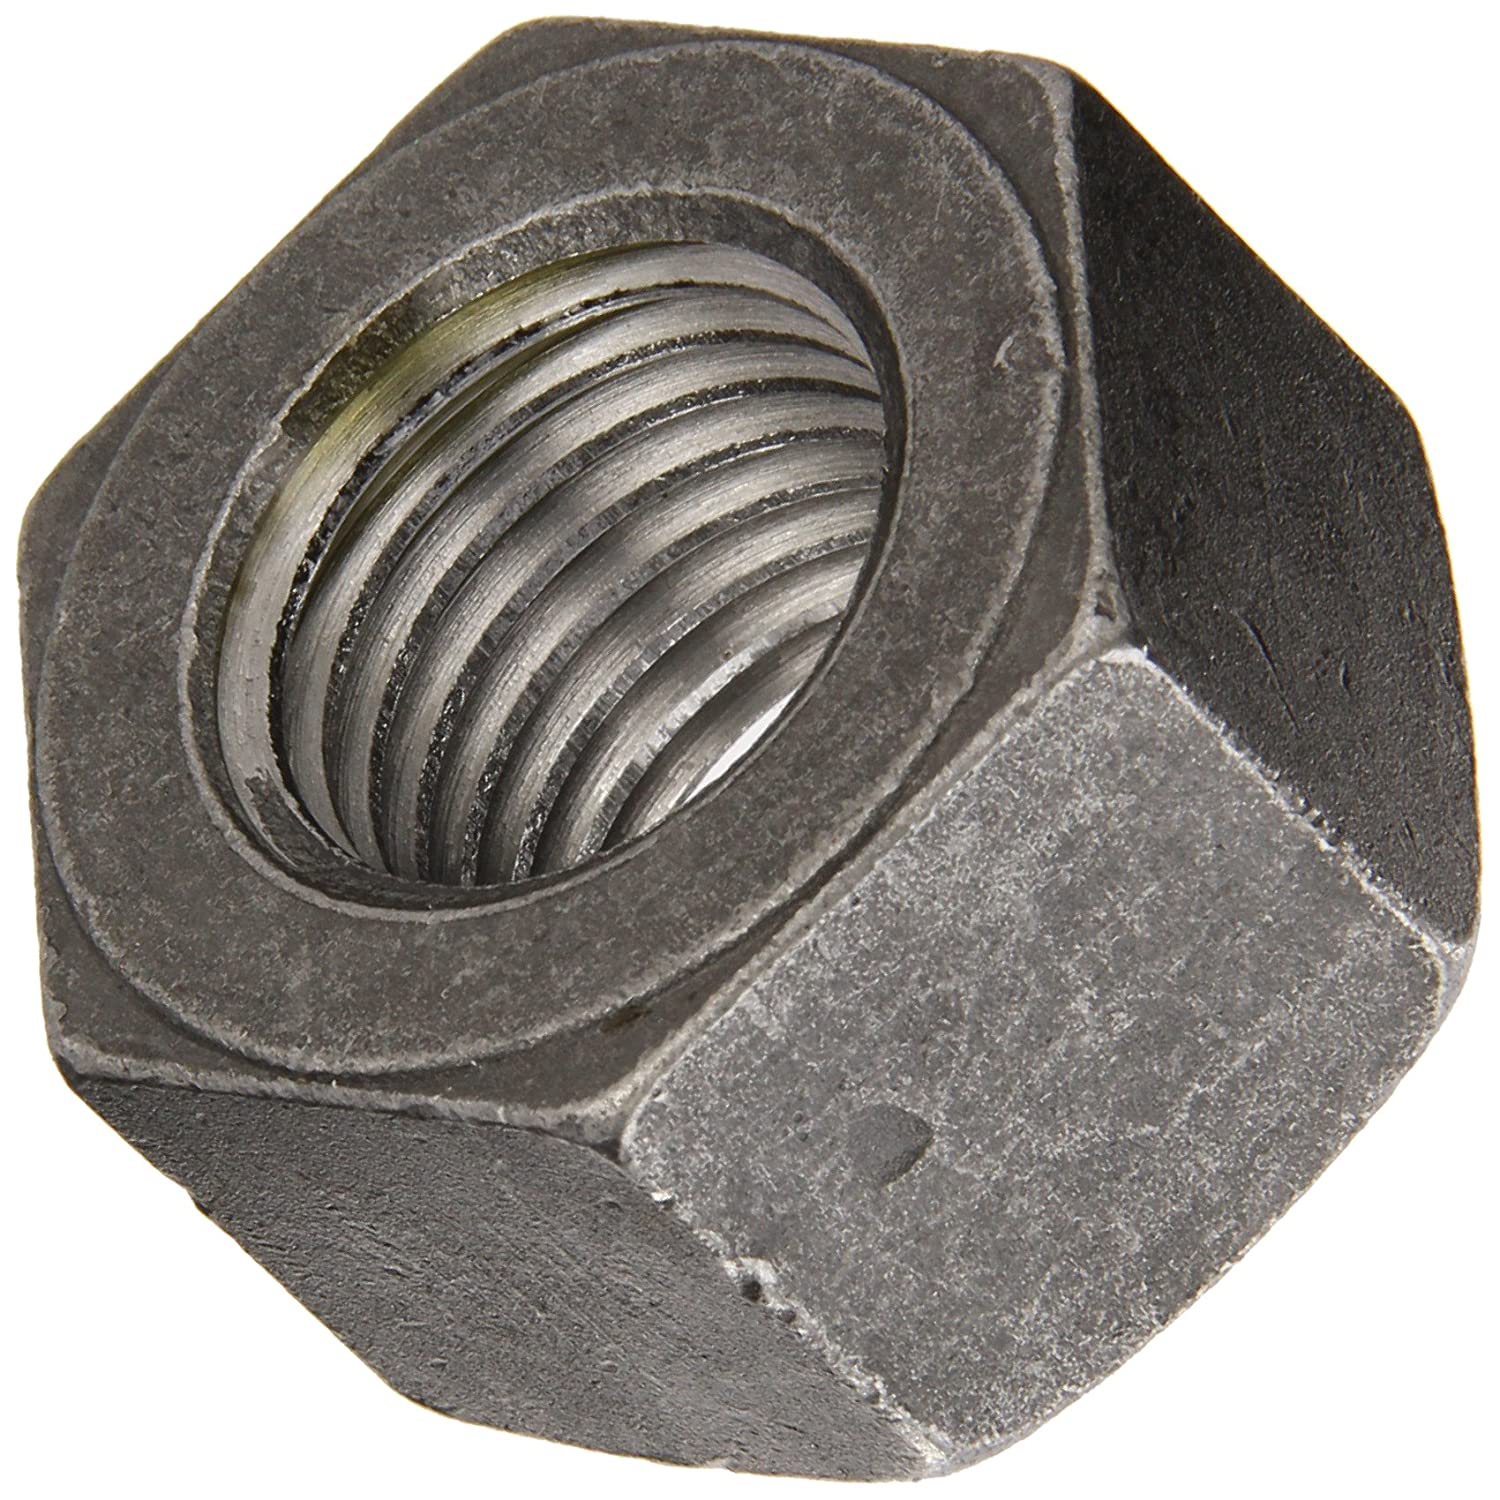 Steel Heavy Hex Nut ASME B18.2.2 and ASTM A325 Pack of 10 1-8 Thread Size 1-5//8 Width Across Flats Grade C Plain Finish 63//64 Thick